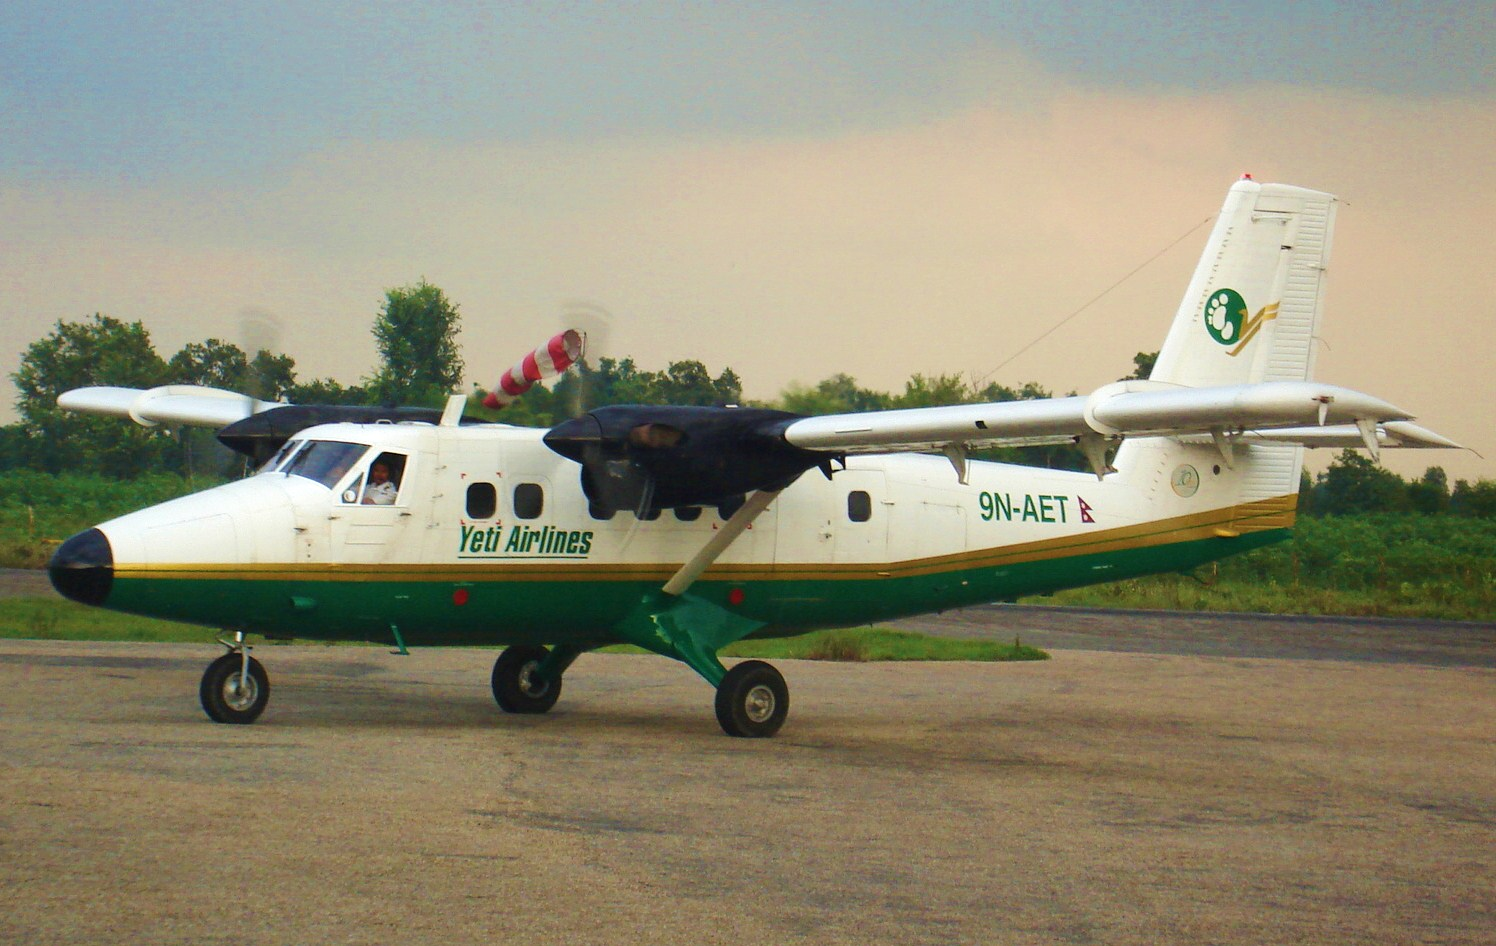 Yeti_Airlines_Twin_Otter.JPG